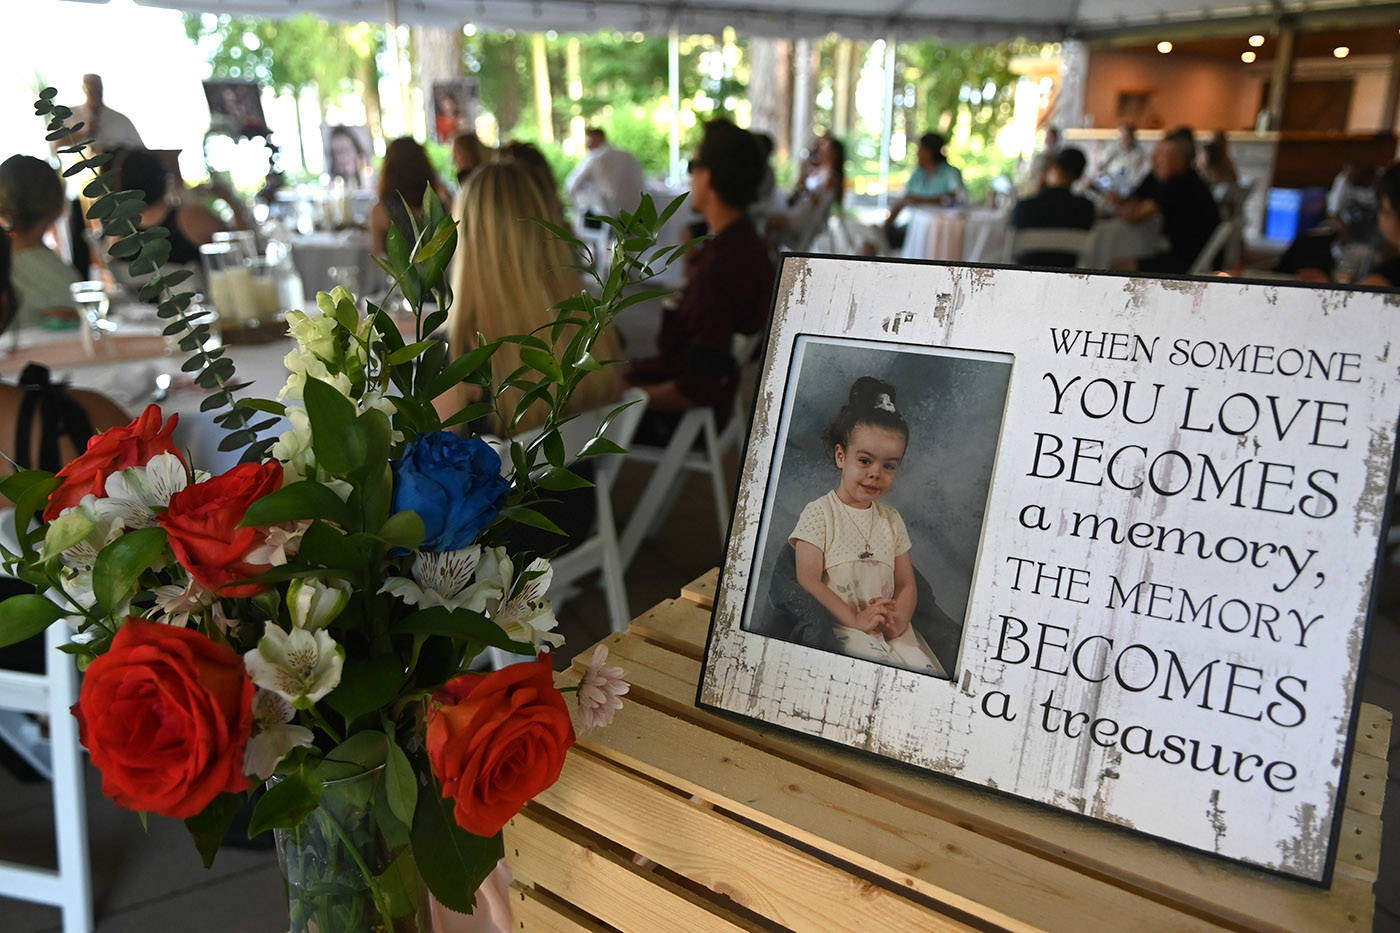 A photo of Shaelene Bell when she was a child sits on a table during her celebration of life at Sandpiper Resort on Saturday, June 26, 2021. (Jenna Hauck/ Chilliwack Progress)